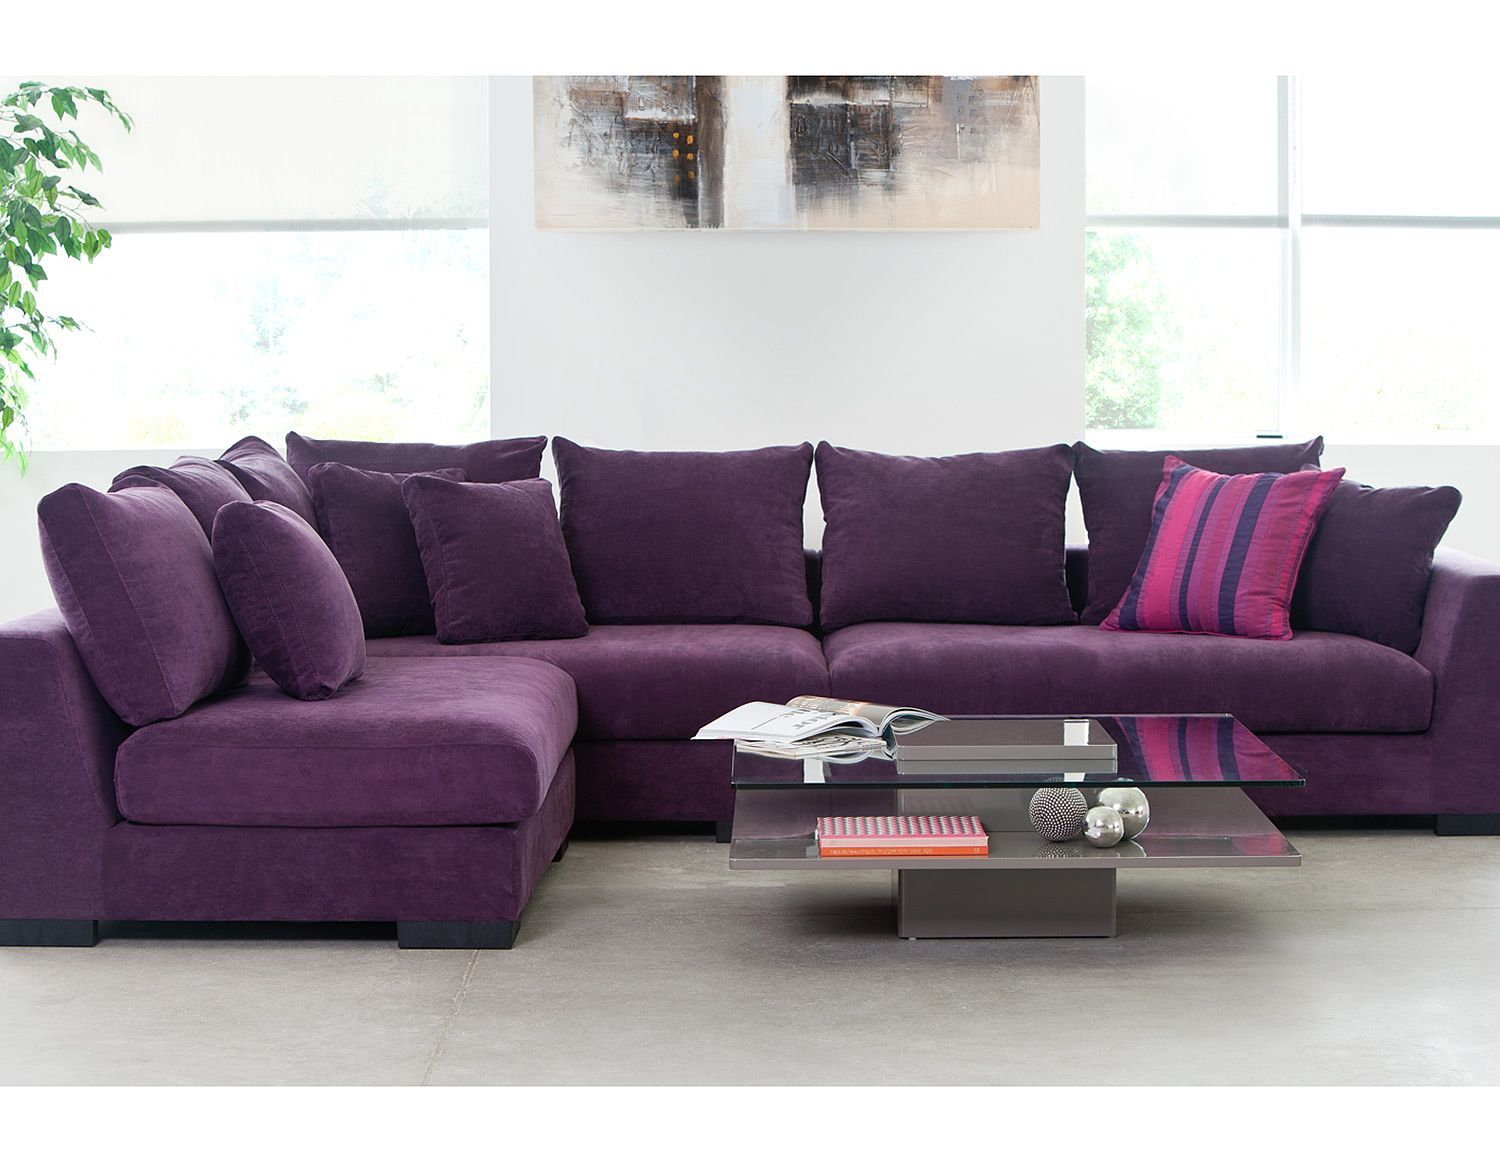 purple corner sofa bed recovering living room sectional sofas cooper faints a